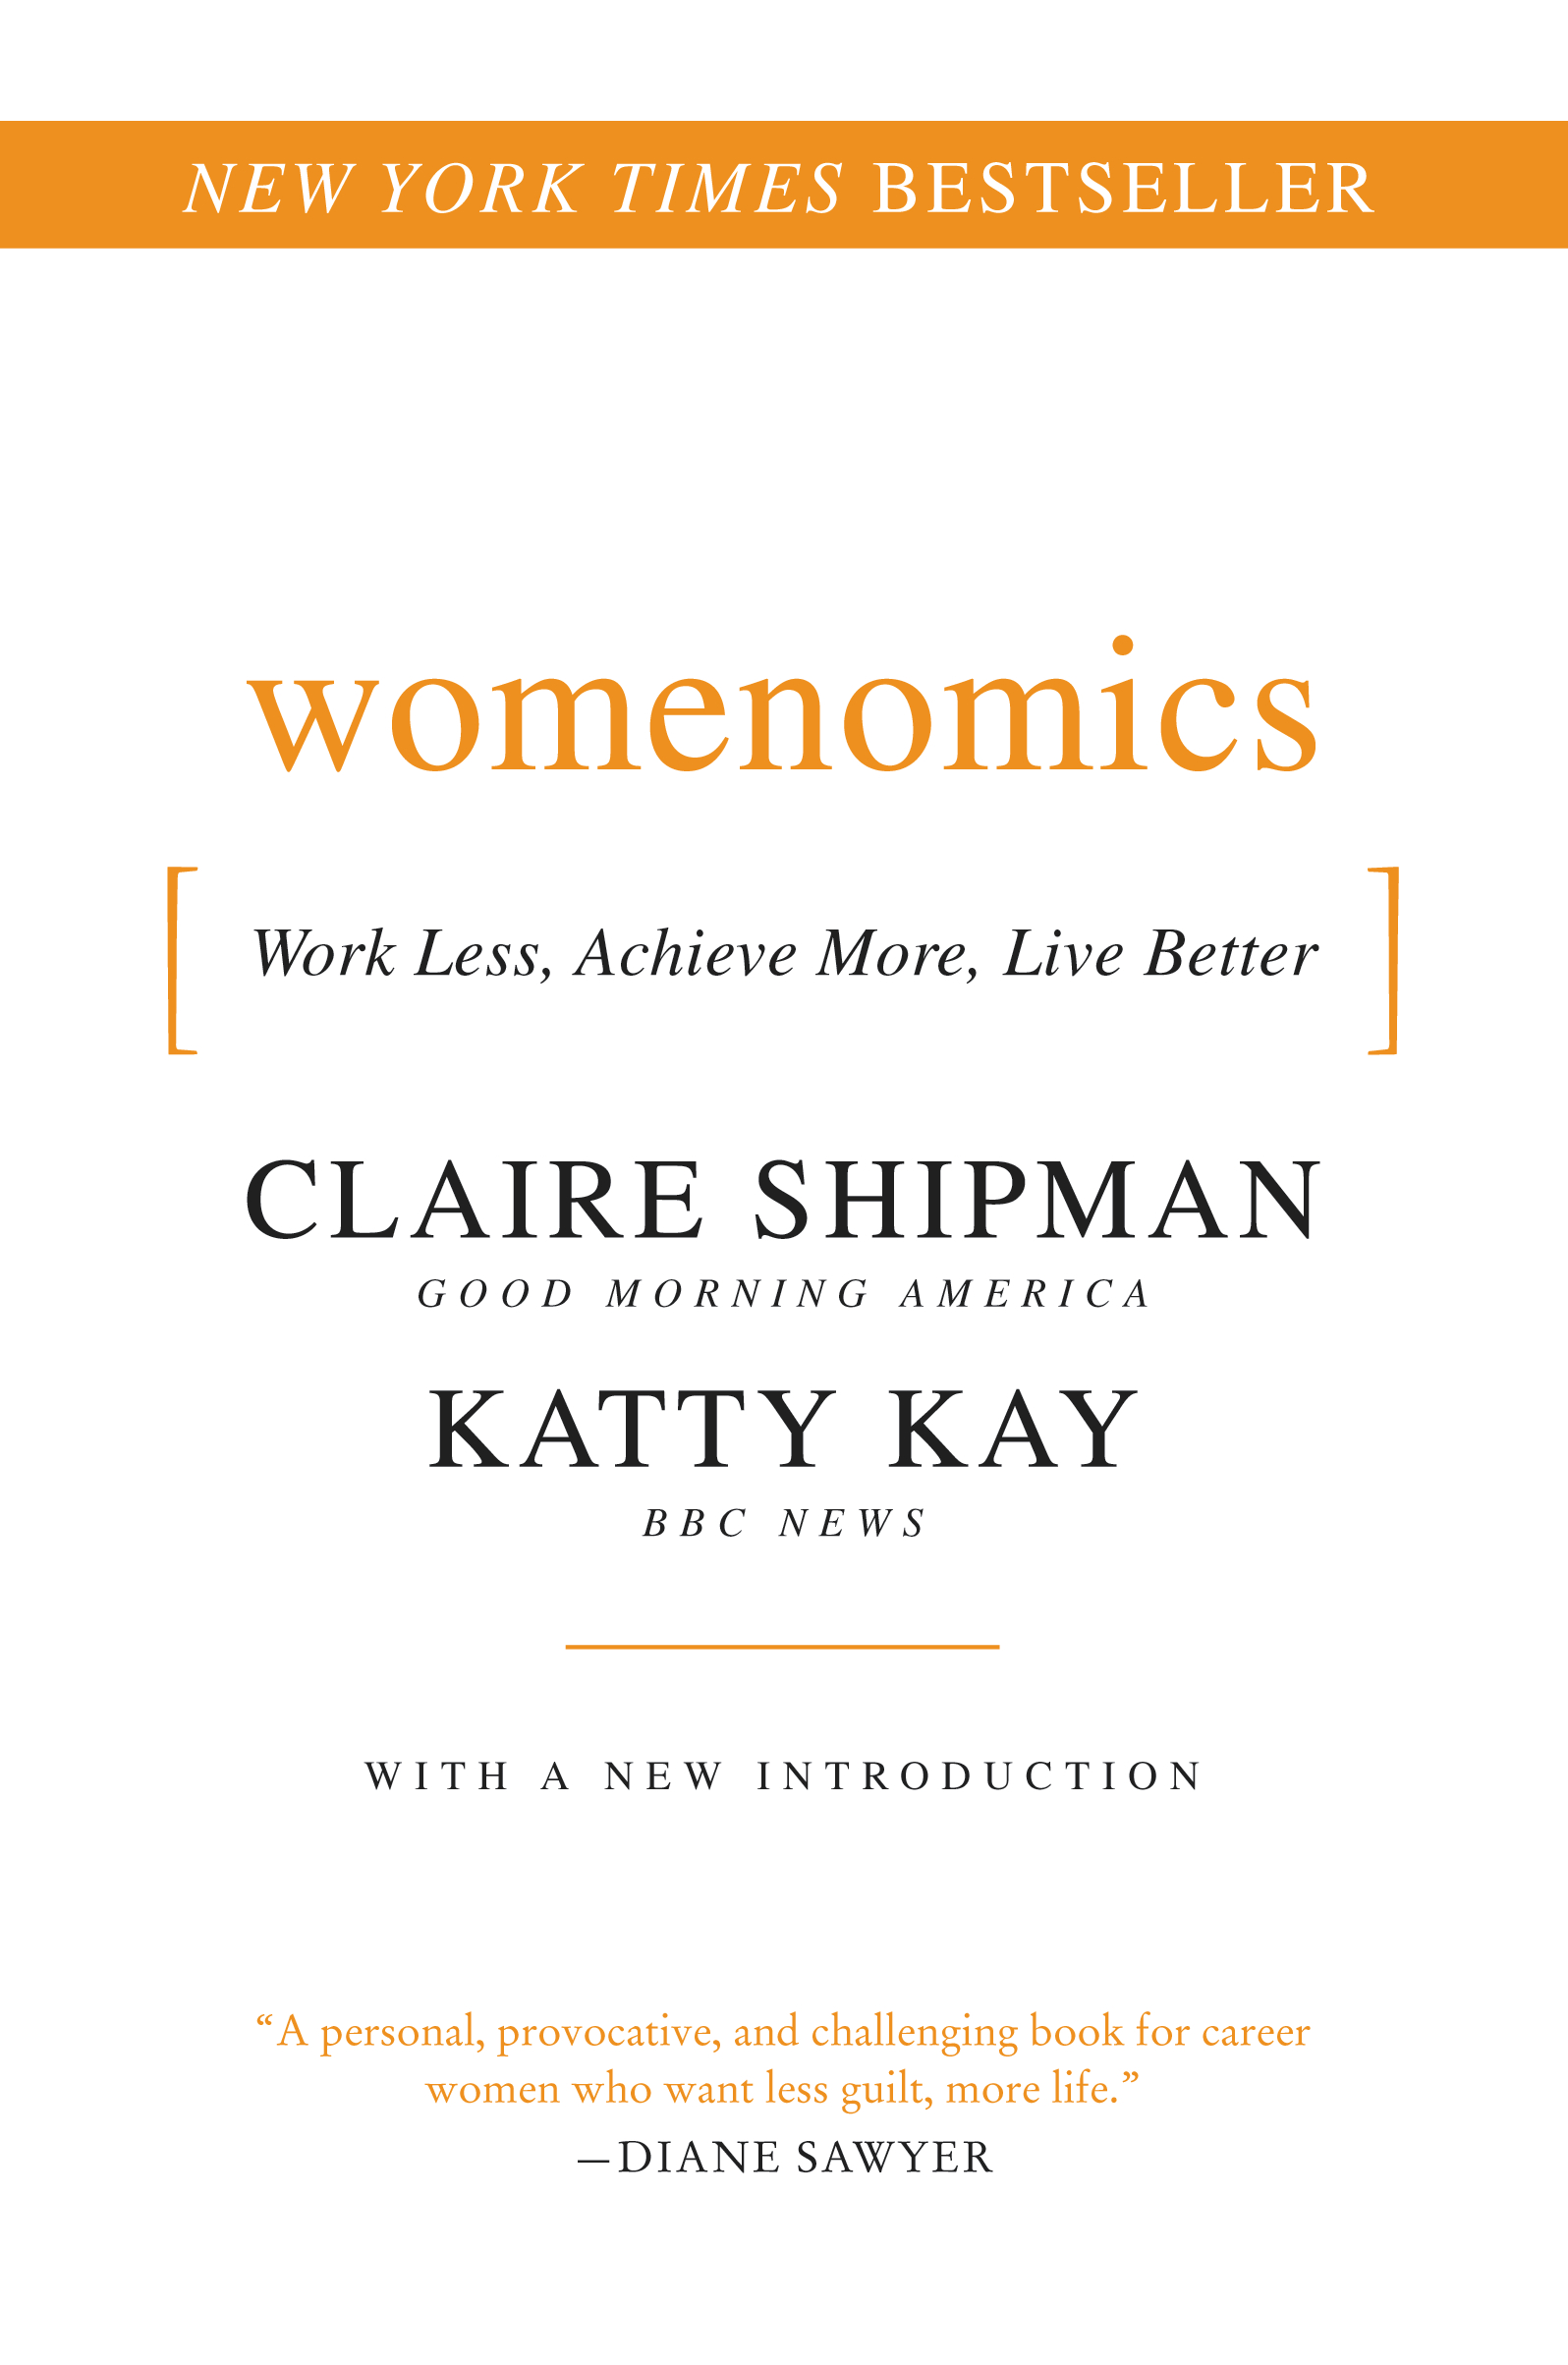 Womenomics Book Cover